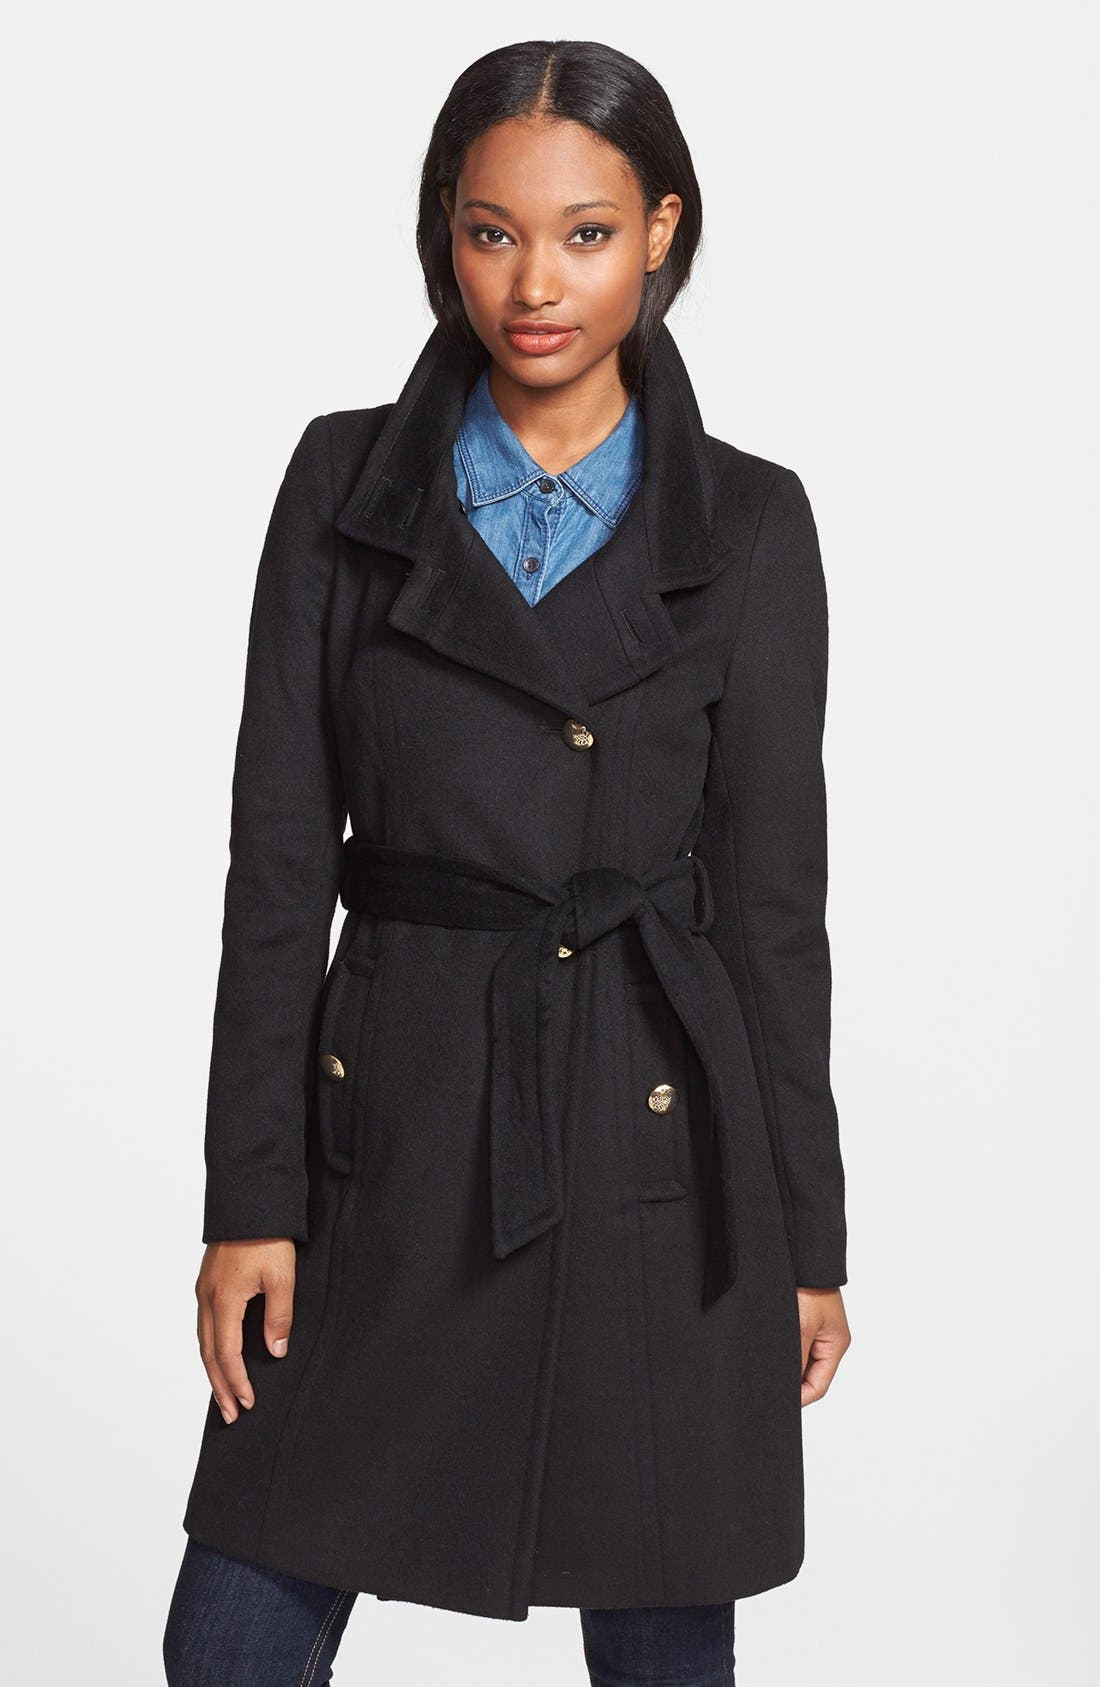 Alternate Image 1 Selected - T Tahari 'Izzy' Asymmetrical Wool Blend Coat (Online Only)